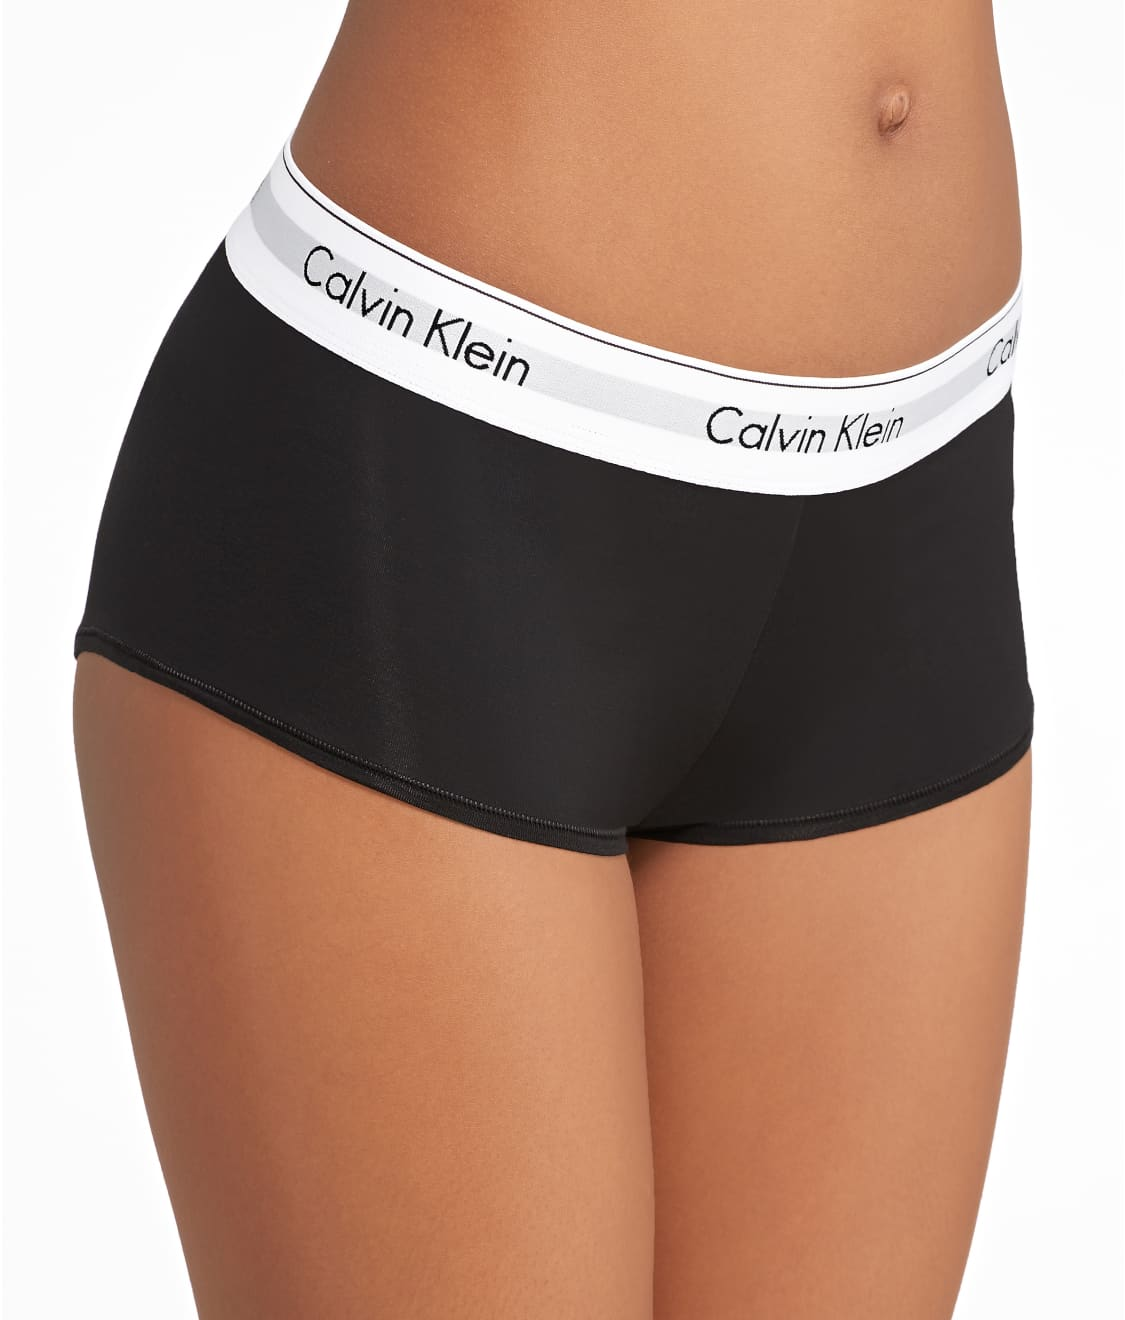 Eastbay For Sale Largest Supplier For Sale Womens Bottom Short Calvin Klein hNA38yioSt